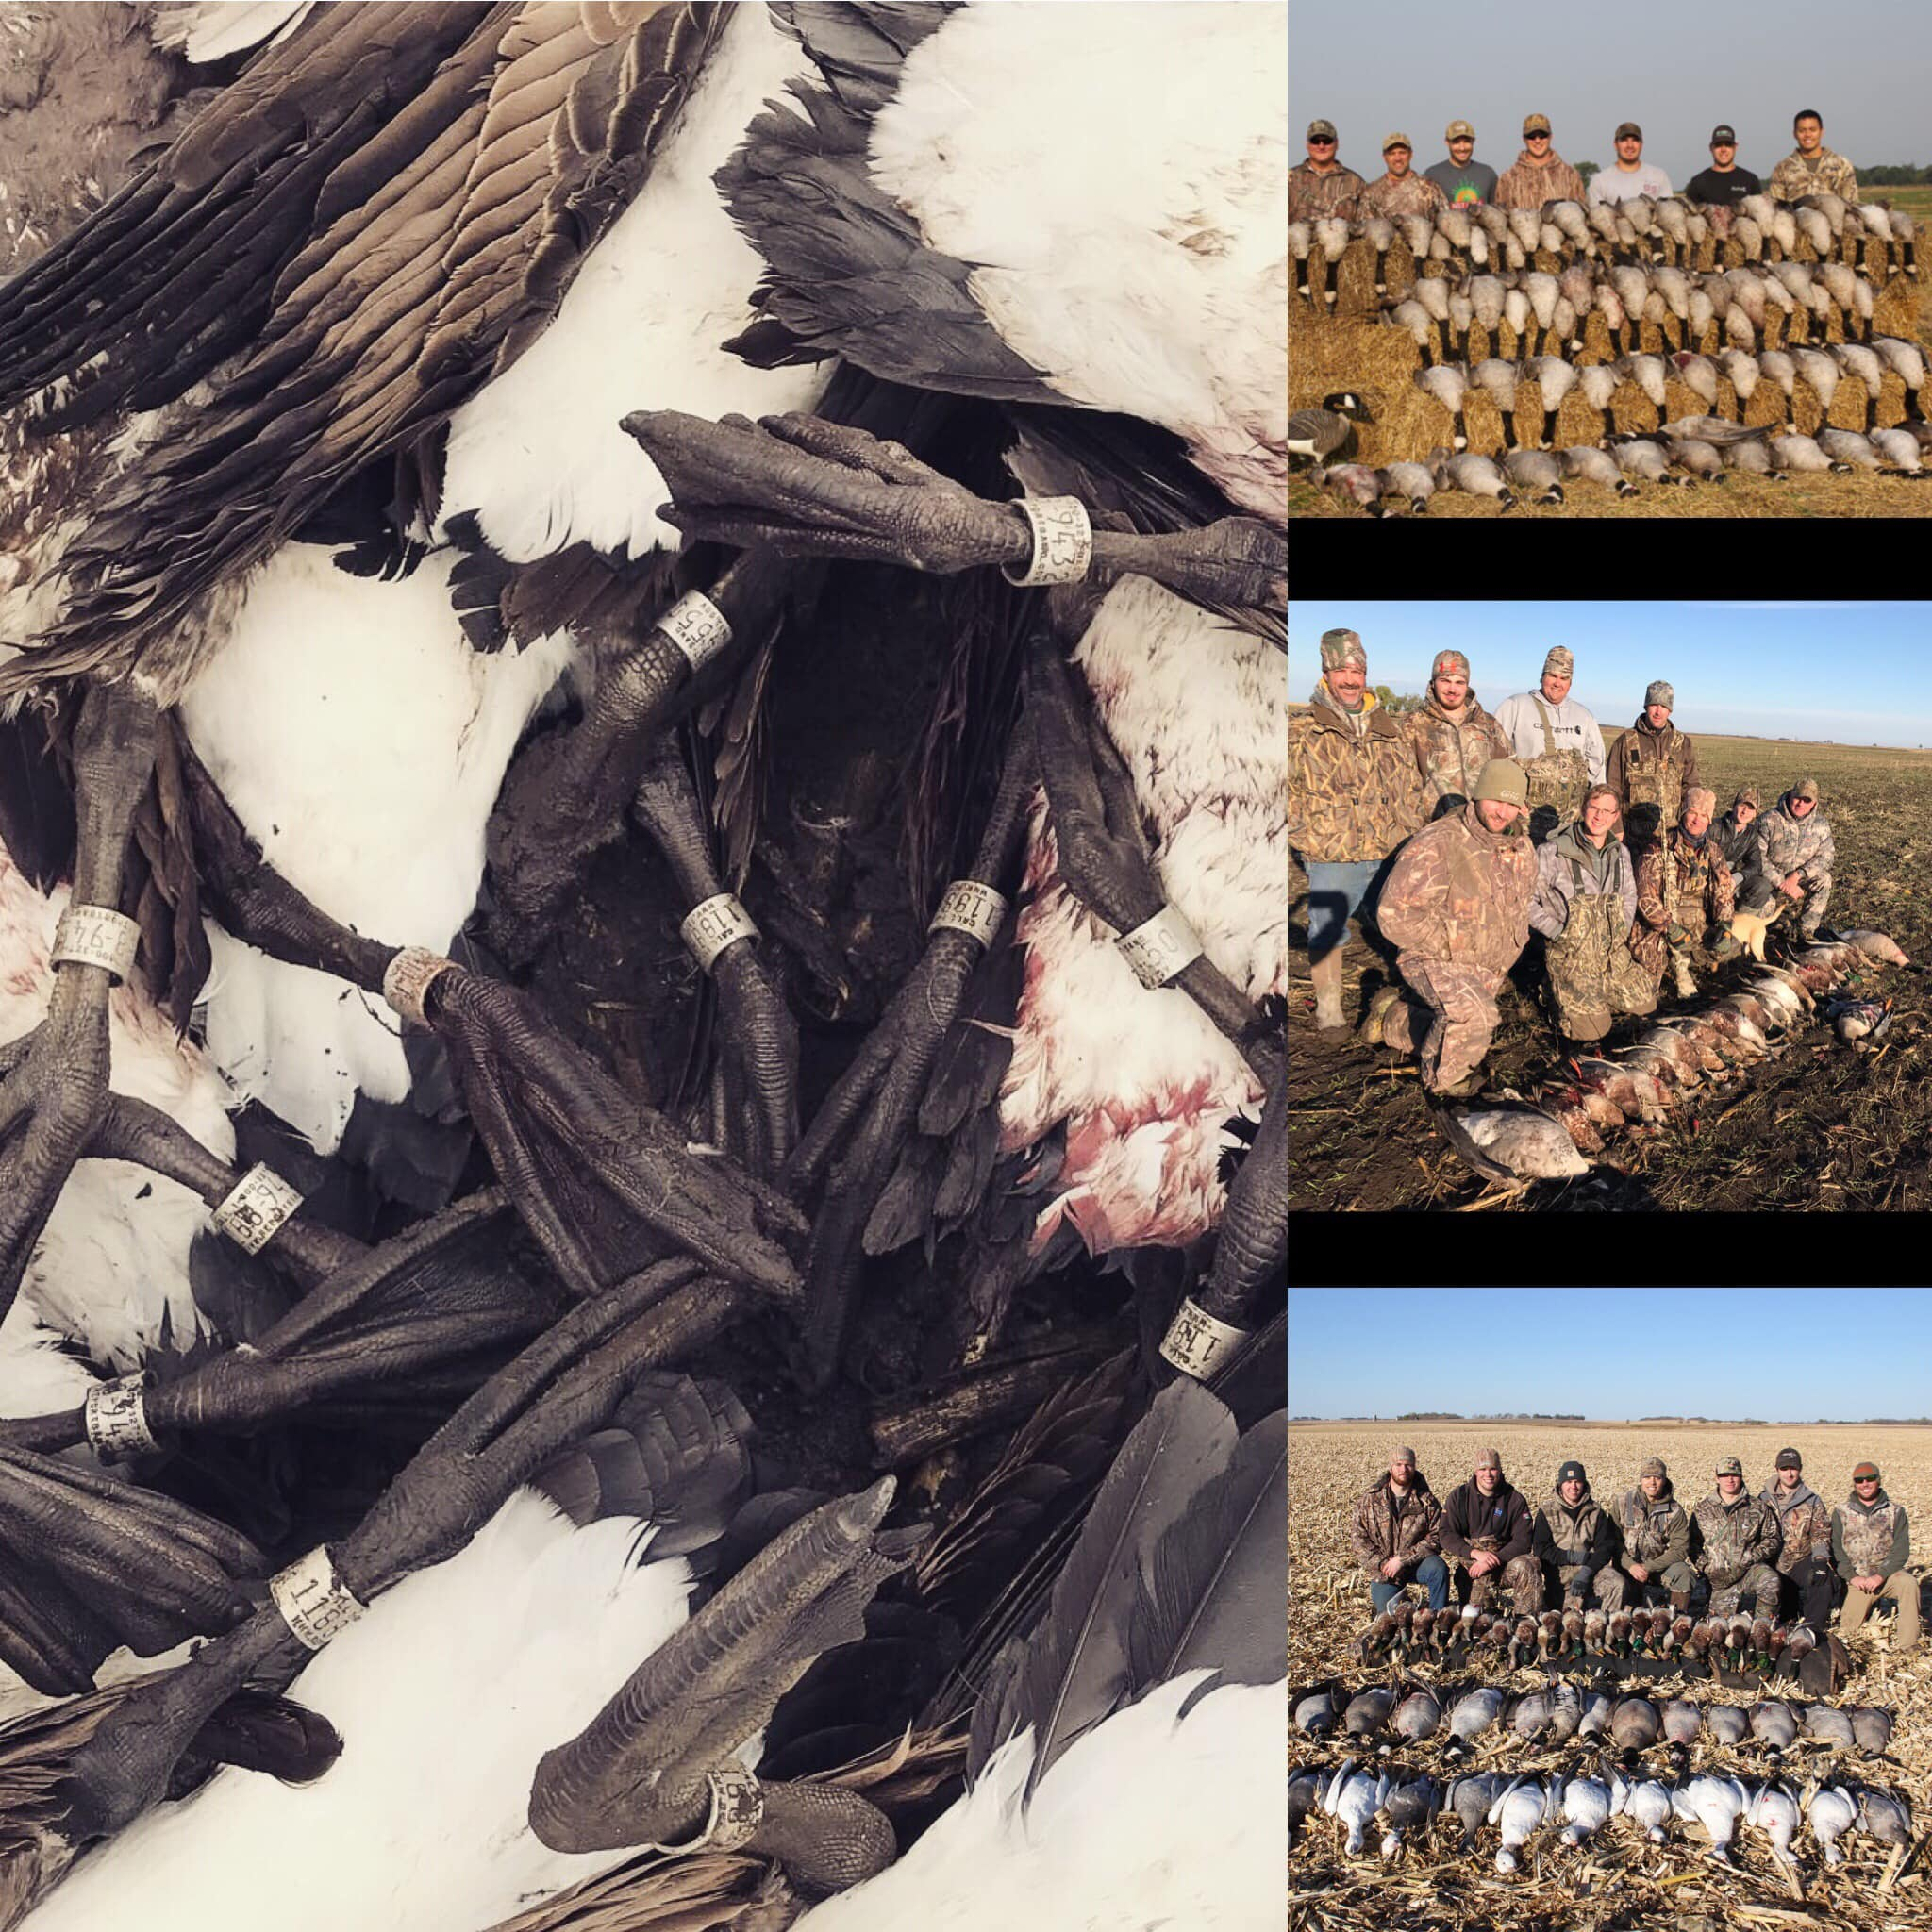 duckgoose-combo-hunt-large-group-15664925651972504830